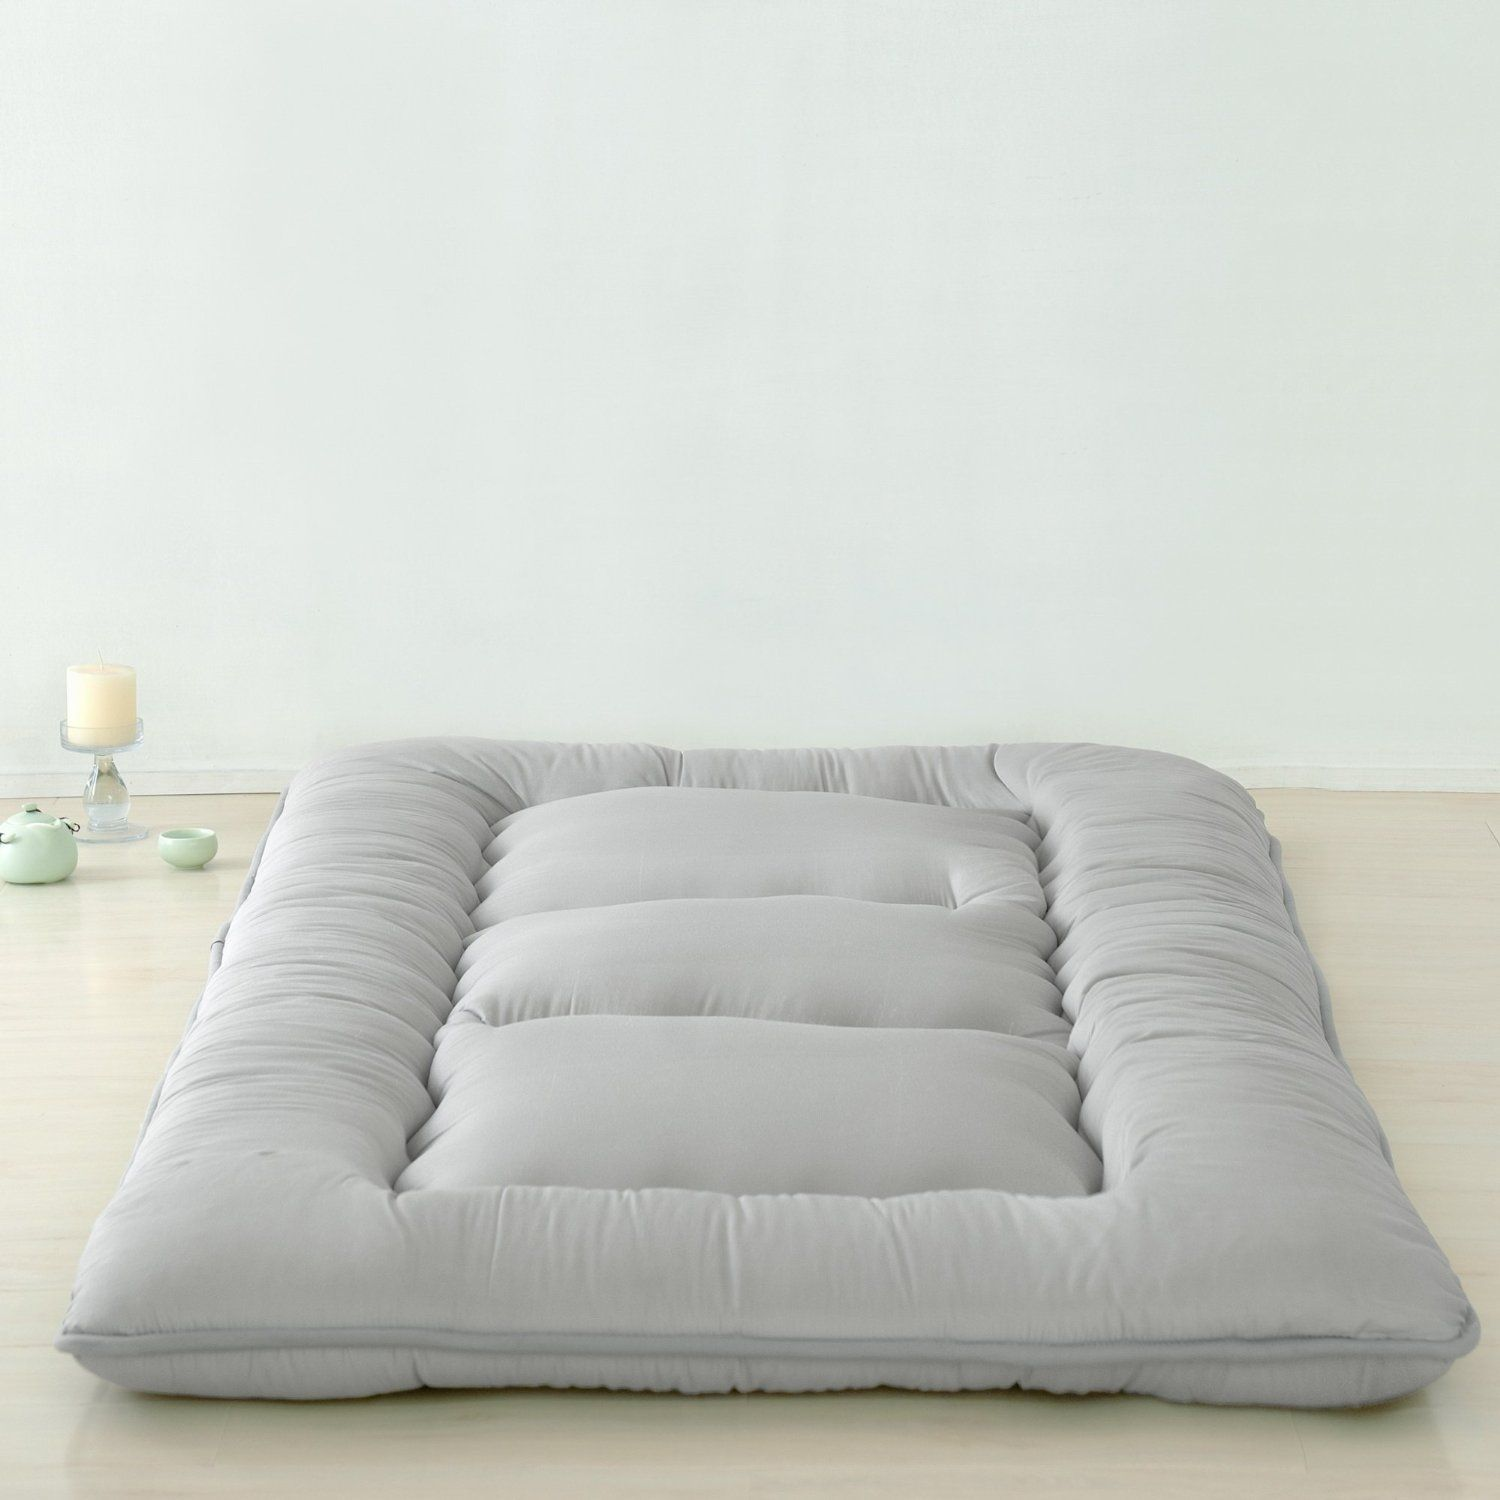 soft middle memory suppliers mattress low and manufacturers foam com cheapest showroom alibaba at